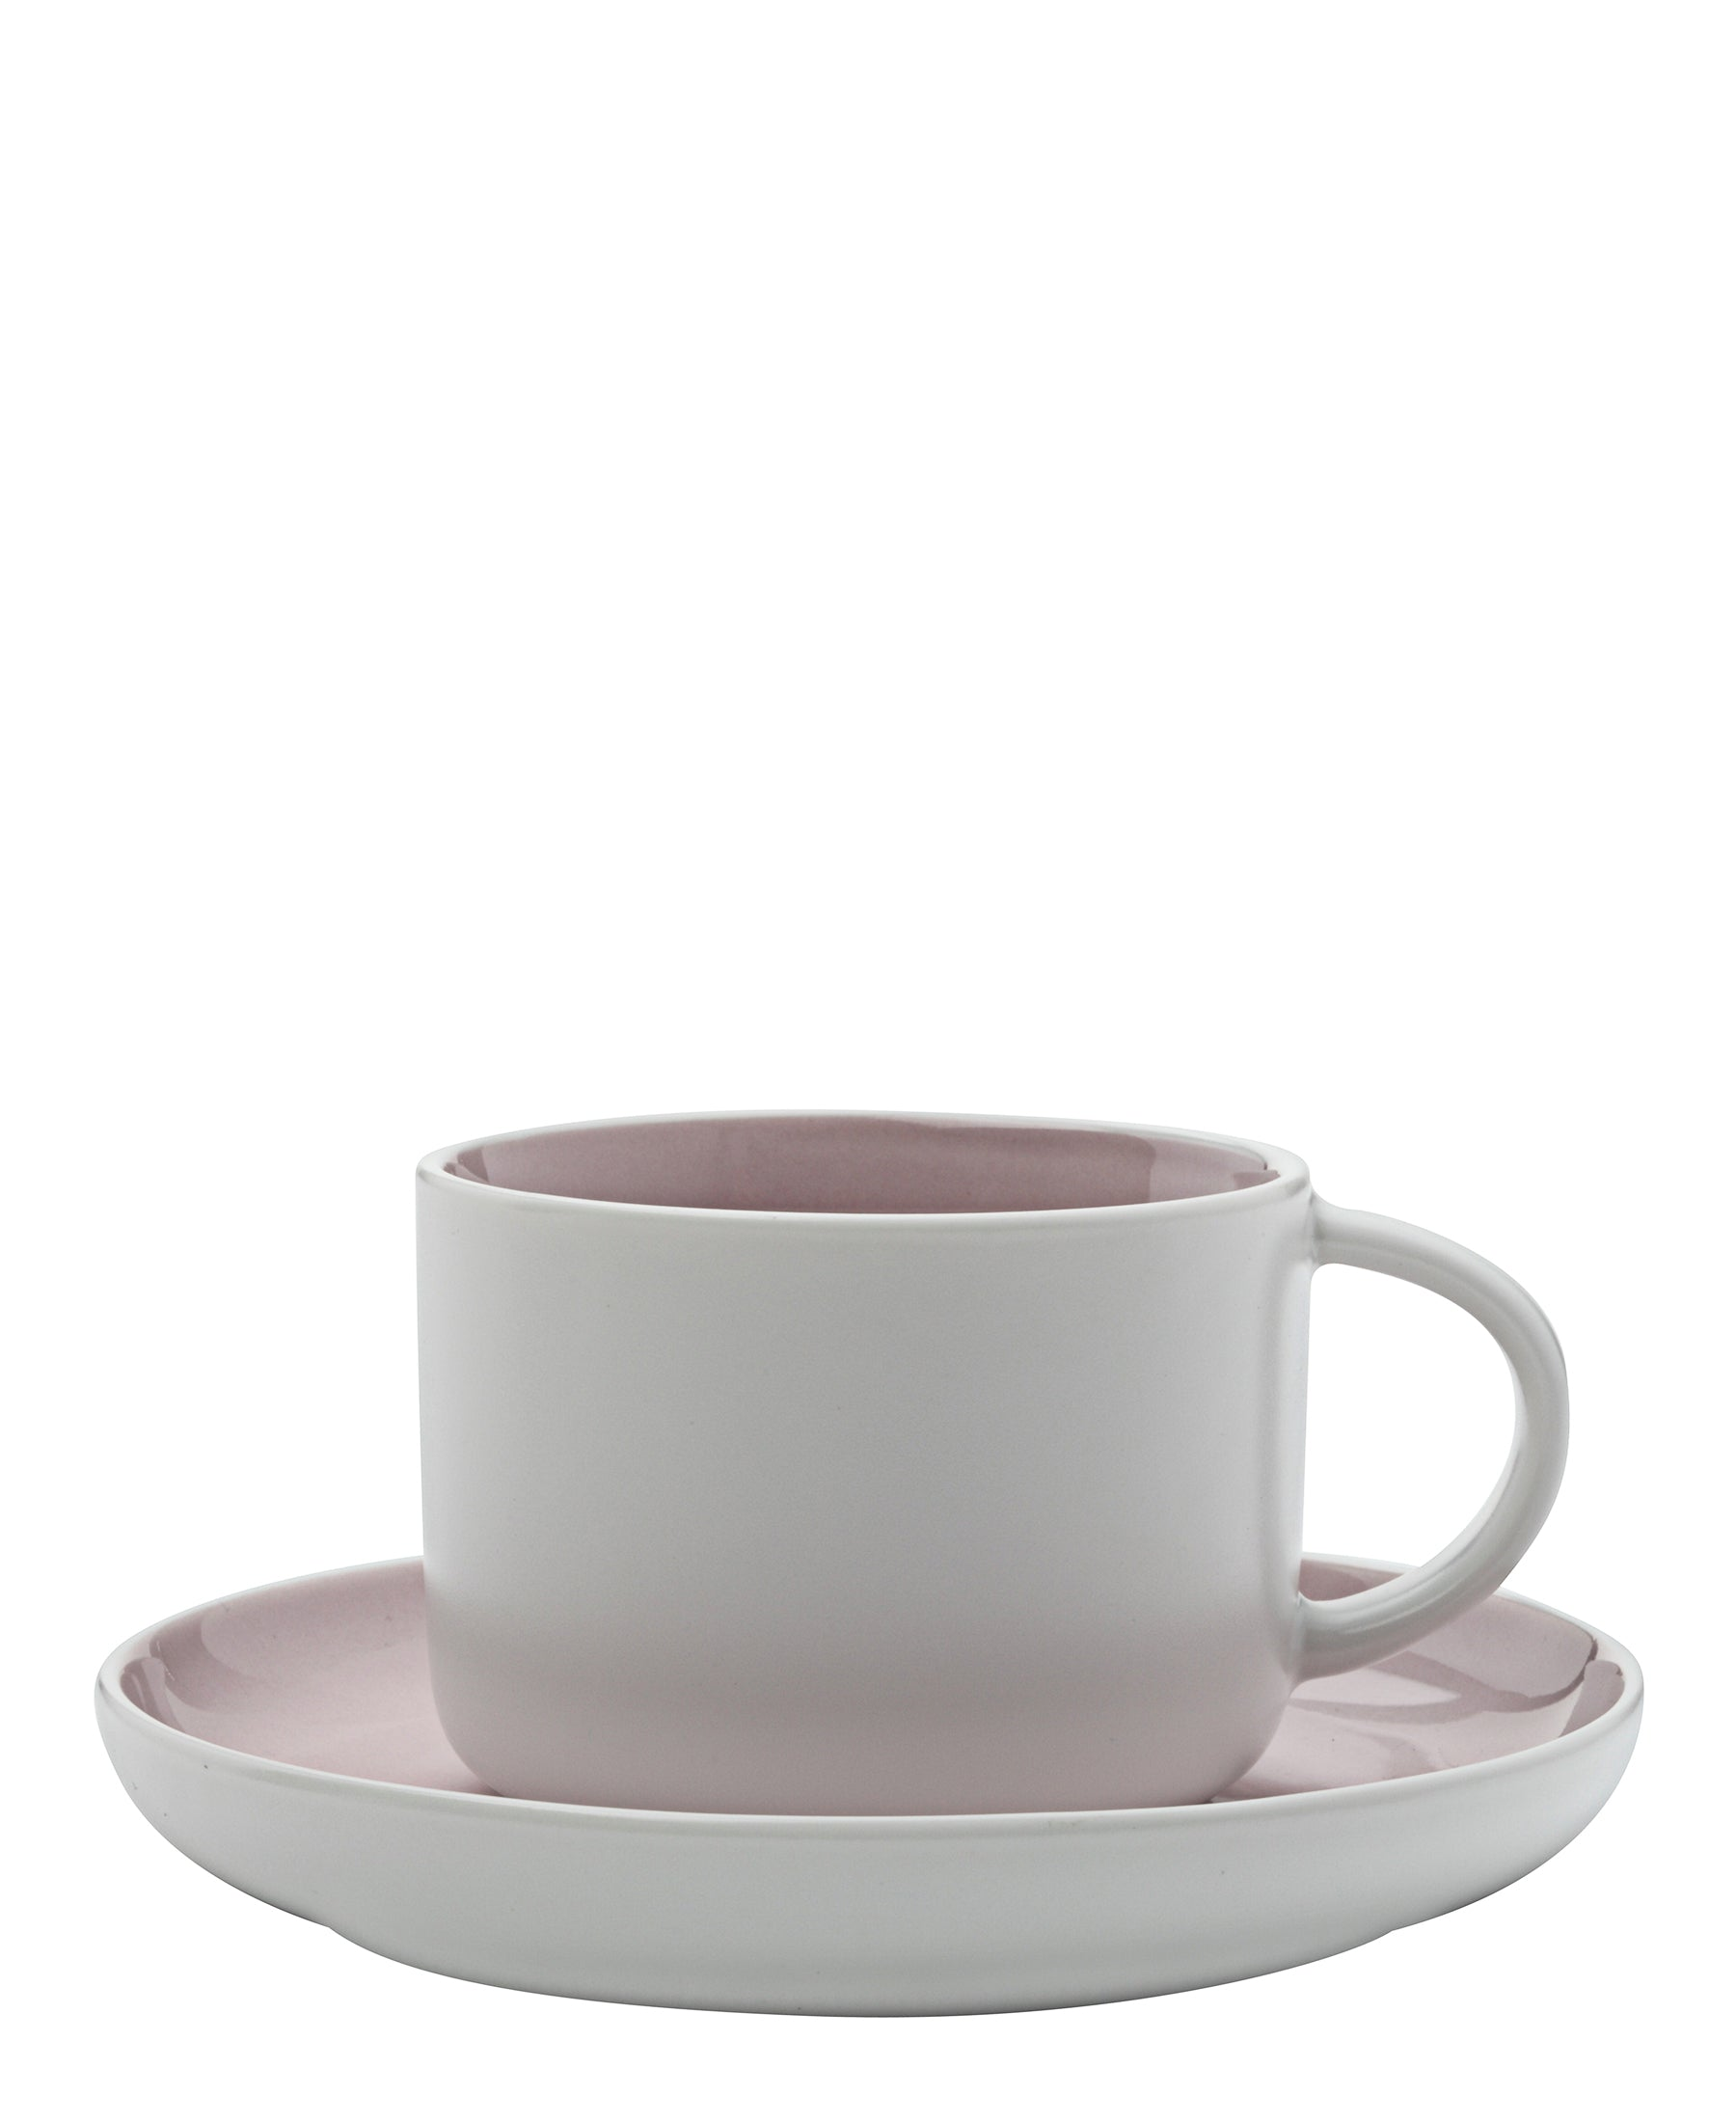 Maxwell & Williams Tint Tea And Saucer Set - Pink